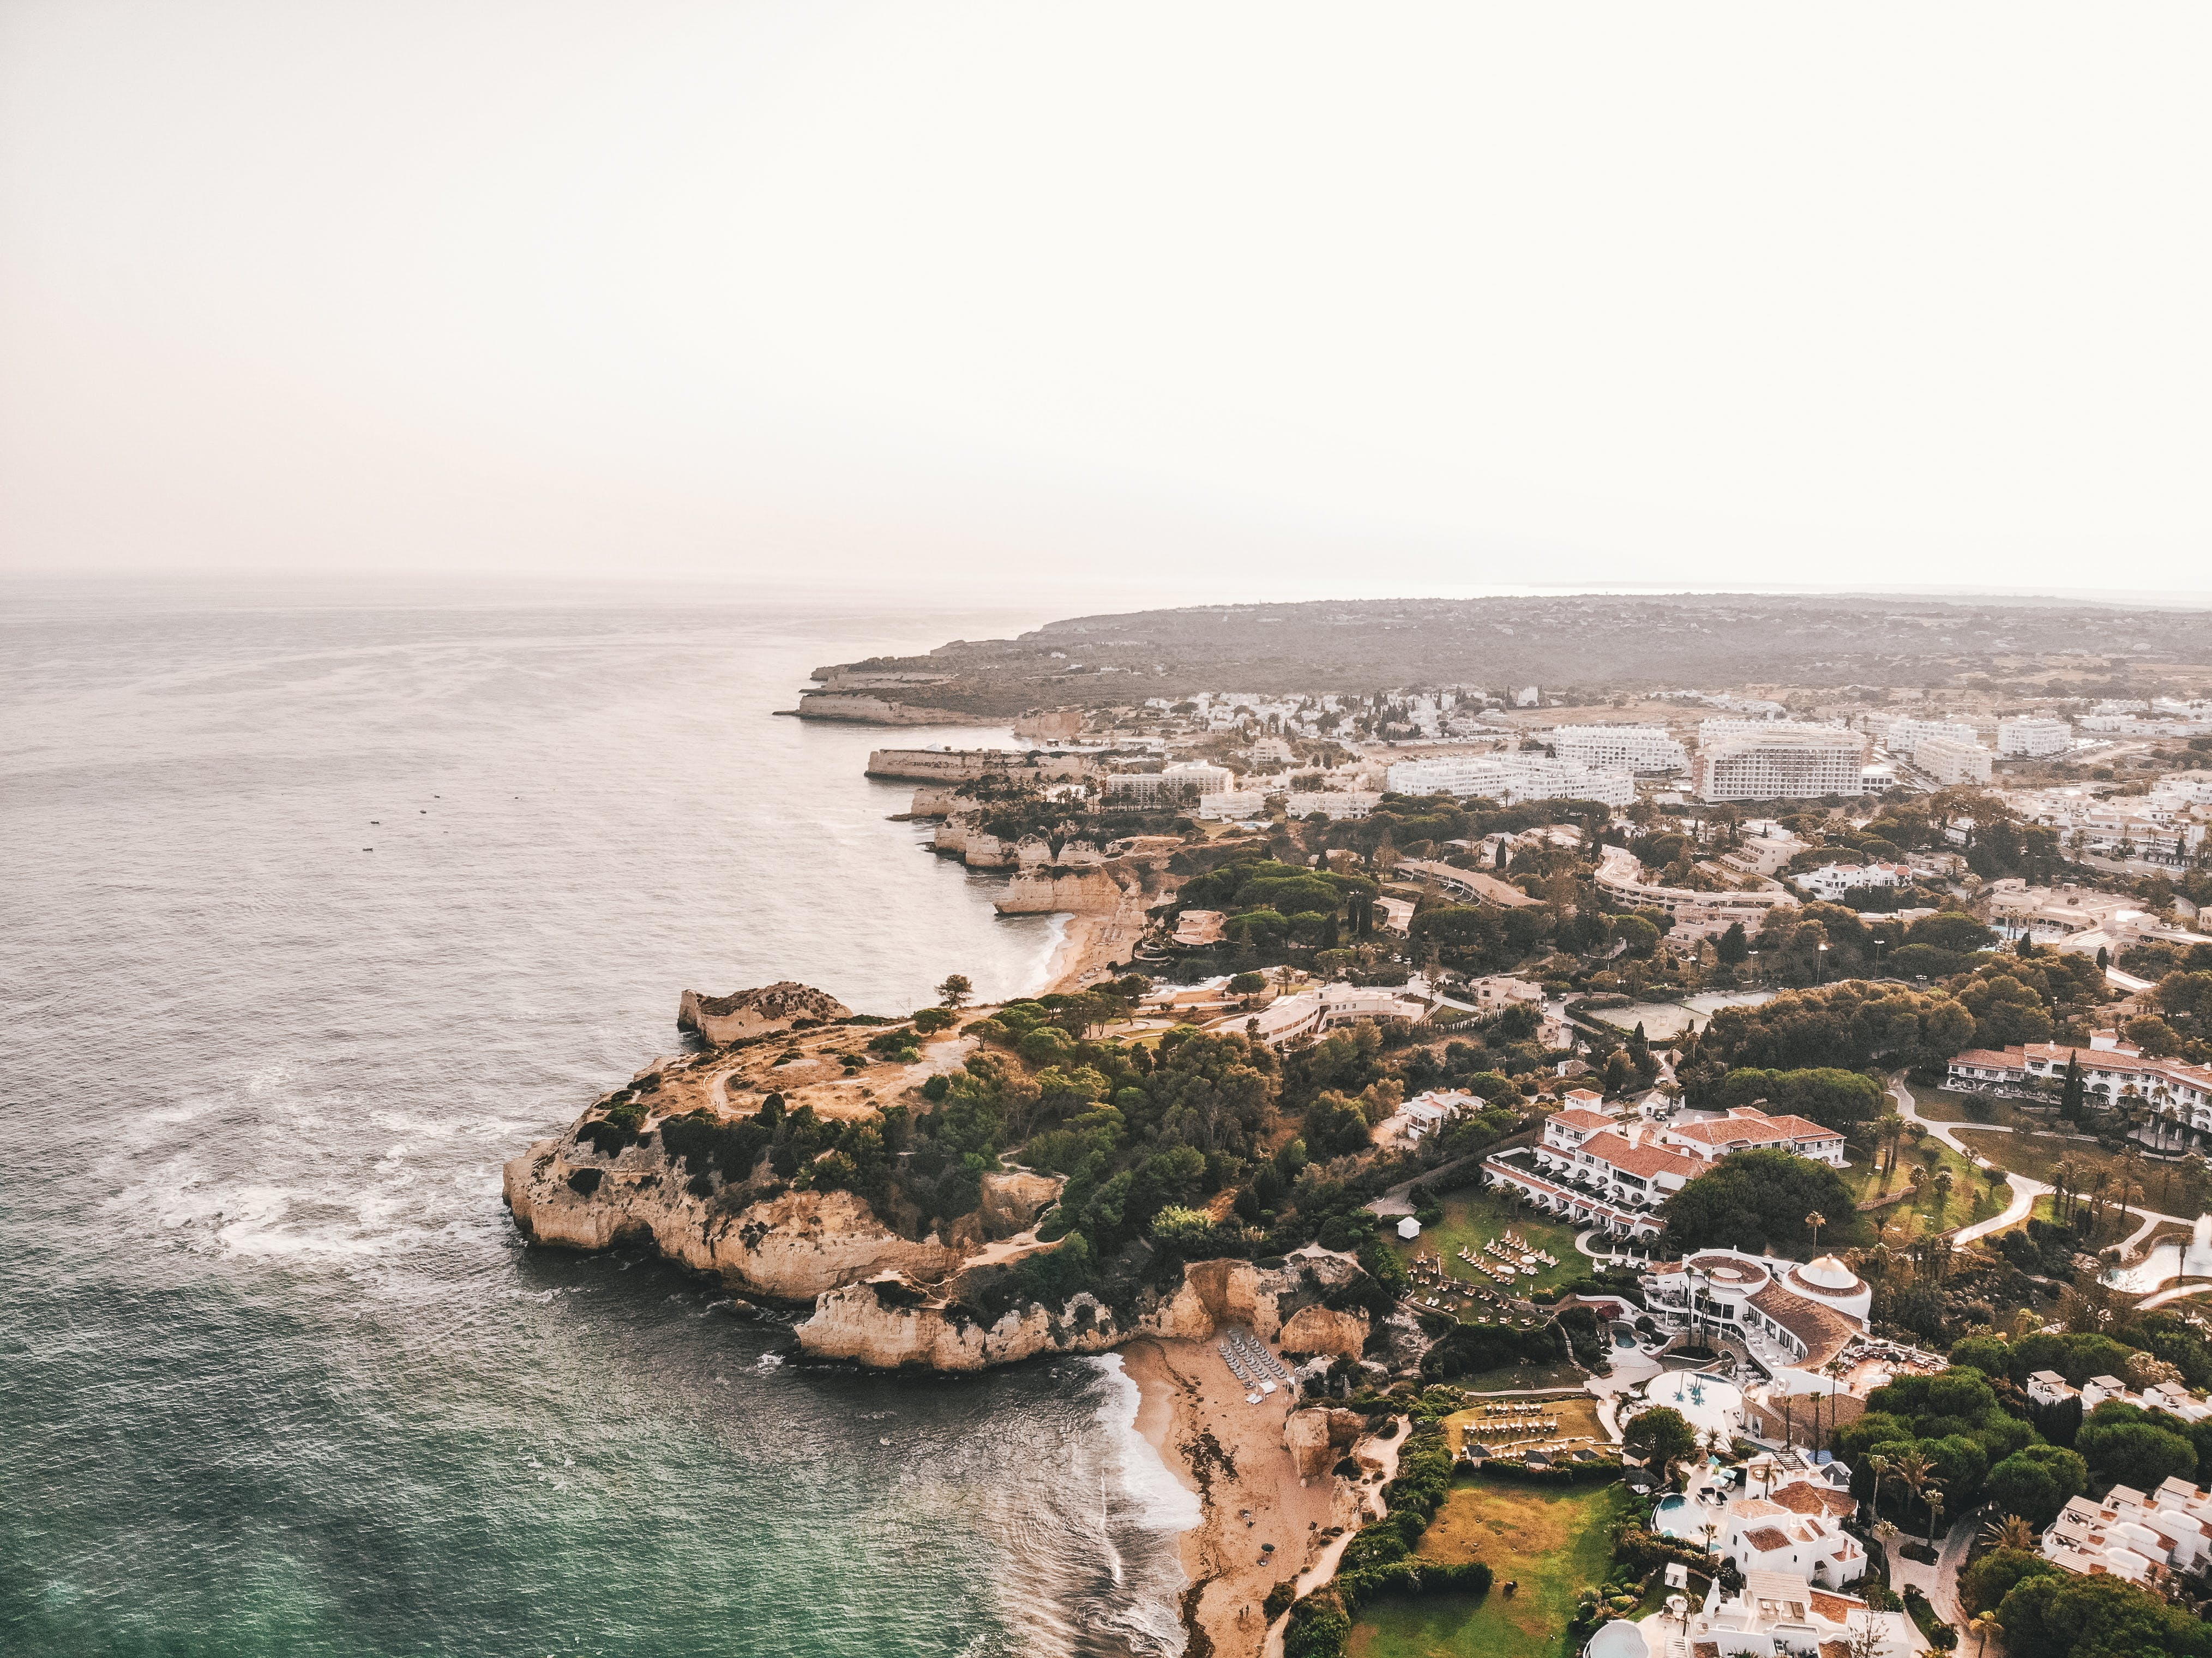 Free stock photo of coastline, drone photography, european city, negative space